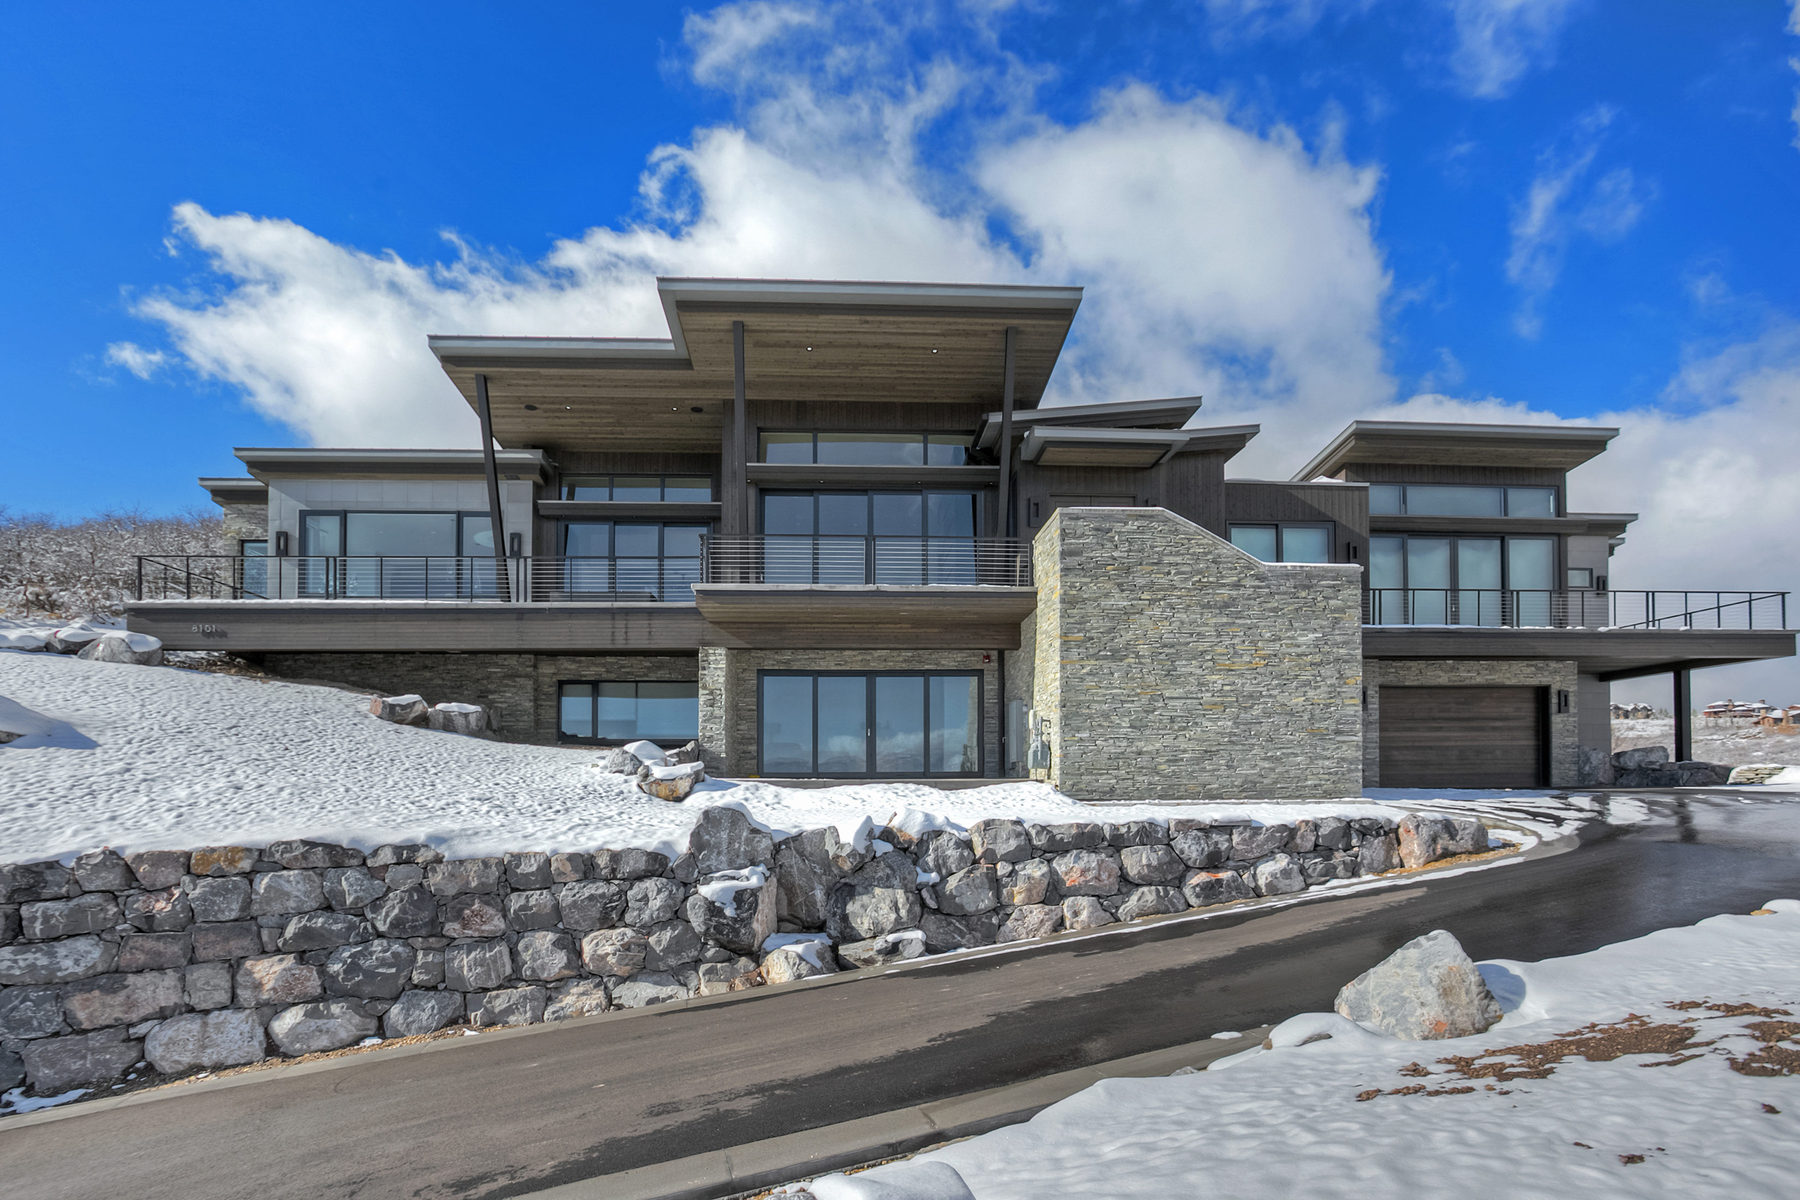 Single Family Home for Sale at Mountain Modern Masterpiece! 8101 N Sunrise Loop Park City, Utah, 84098 United States